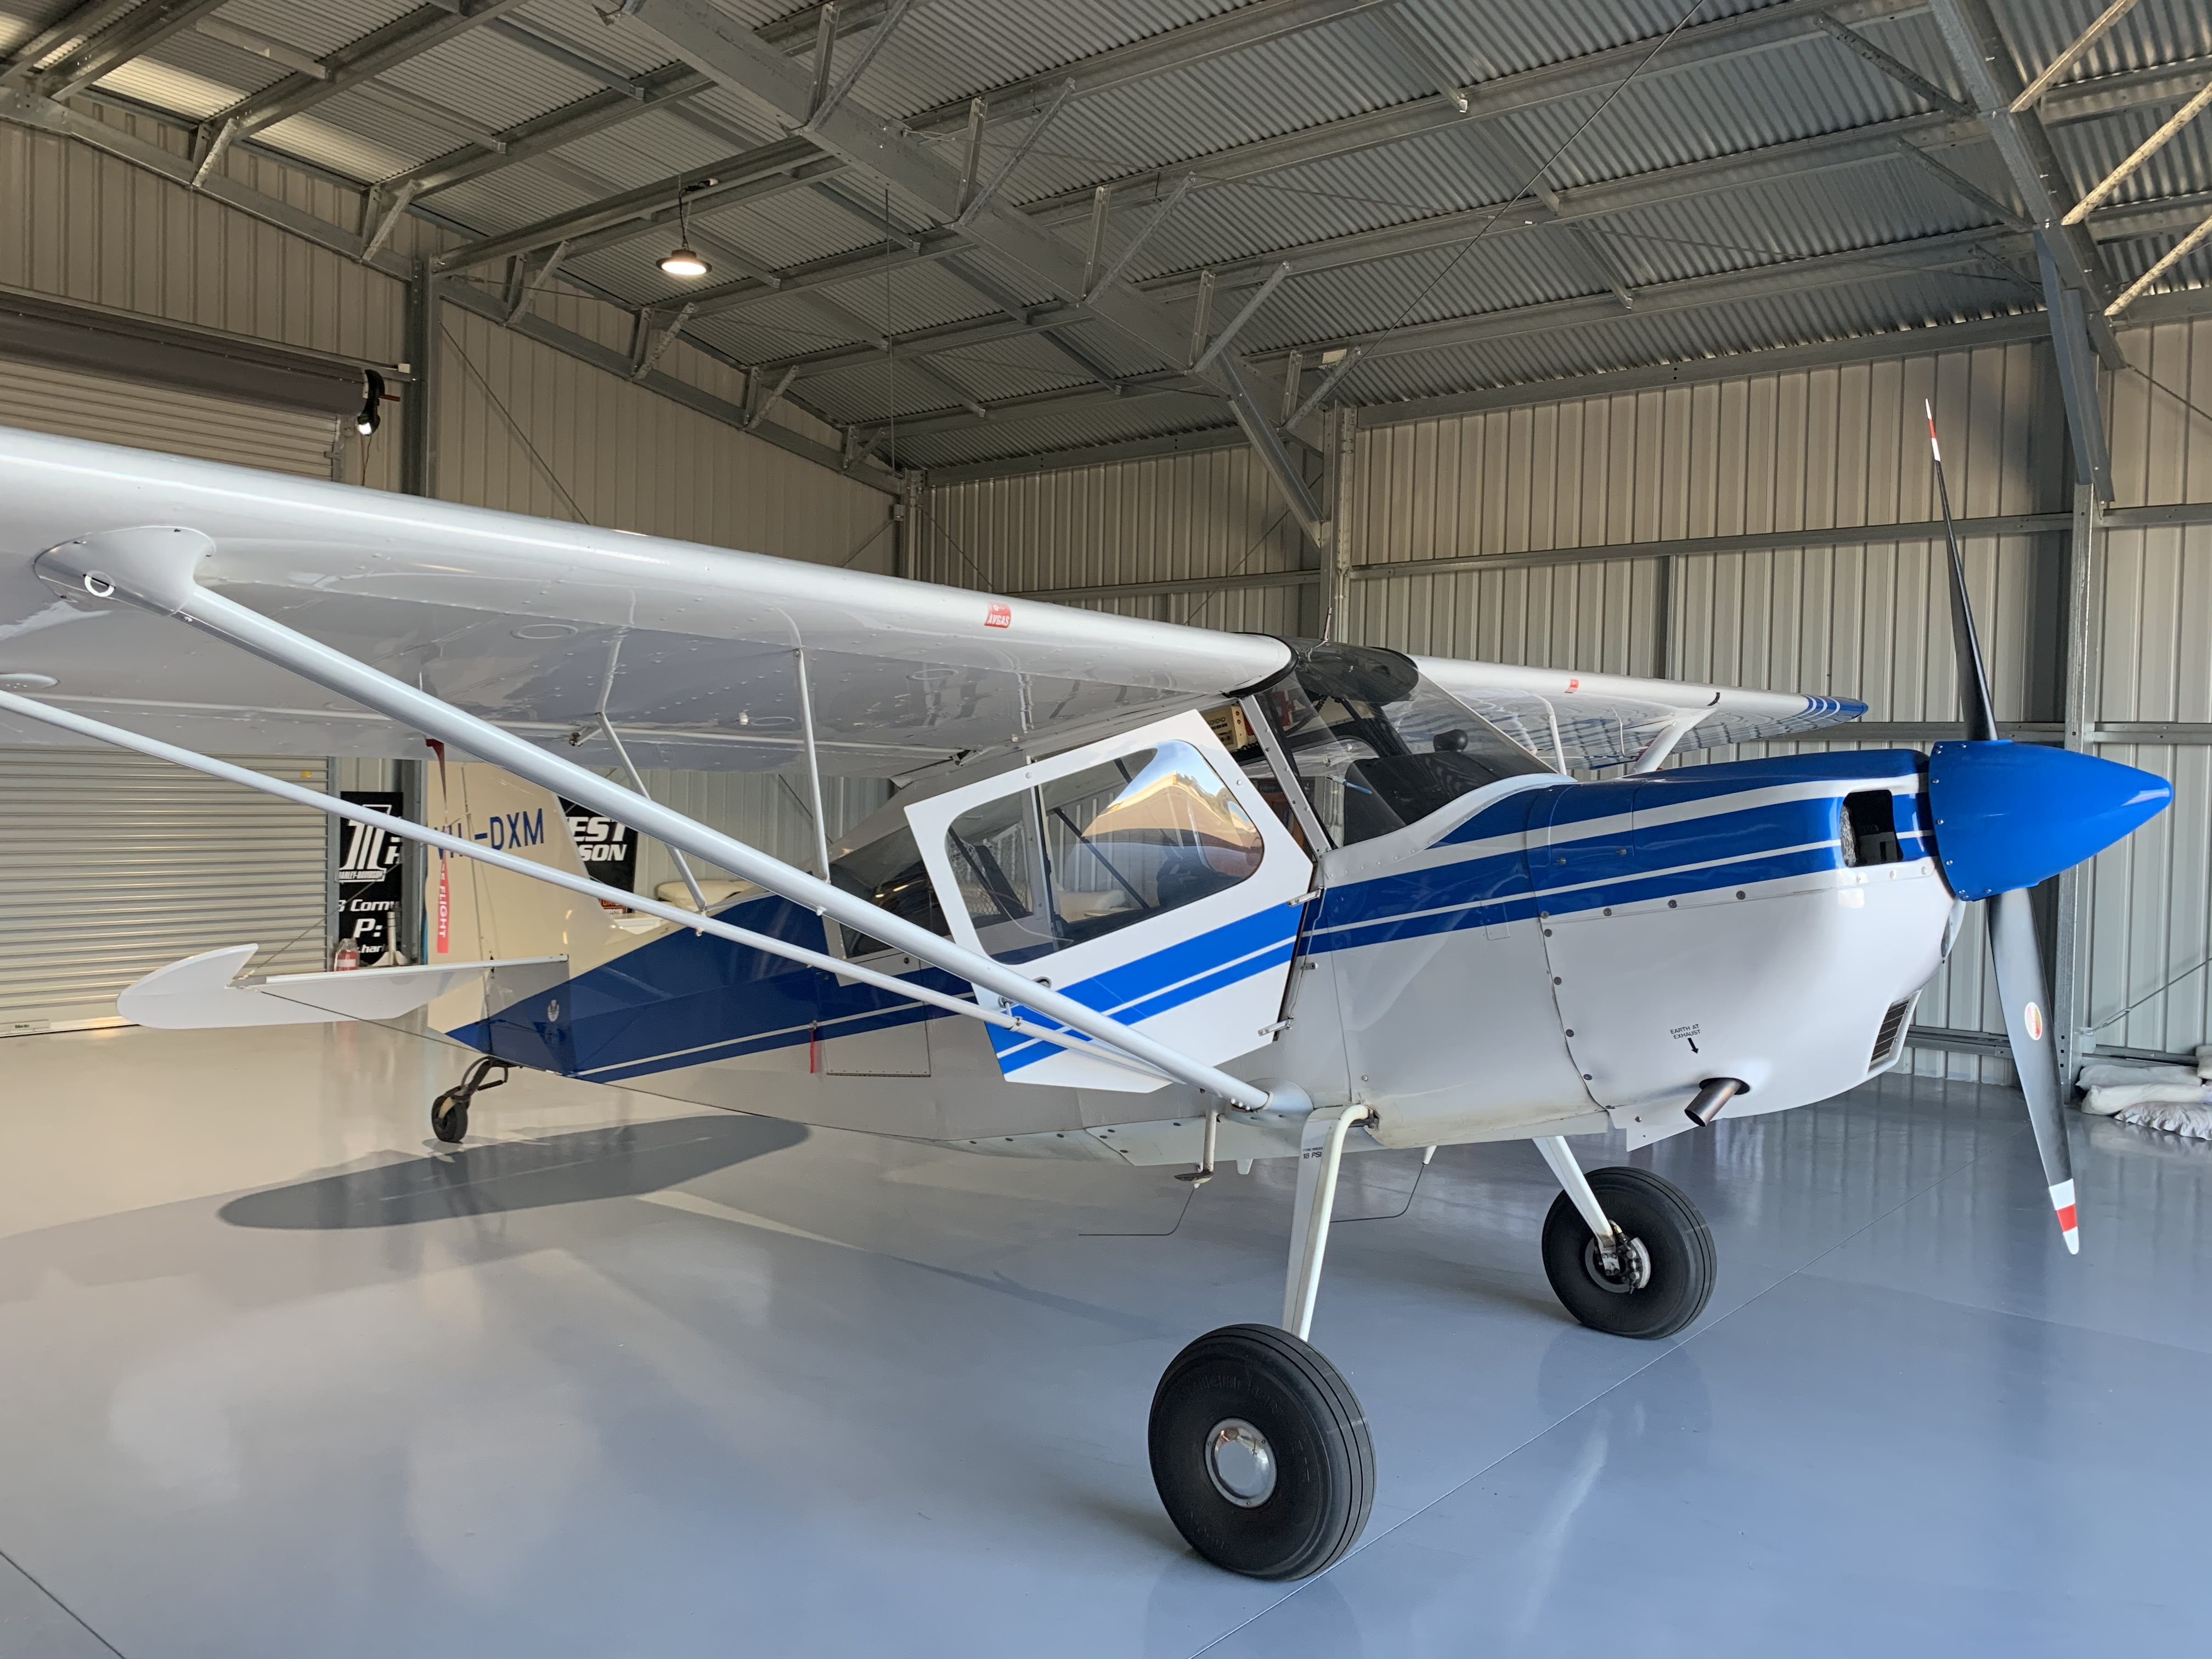 An American Champion Scout aircraft